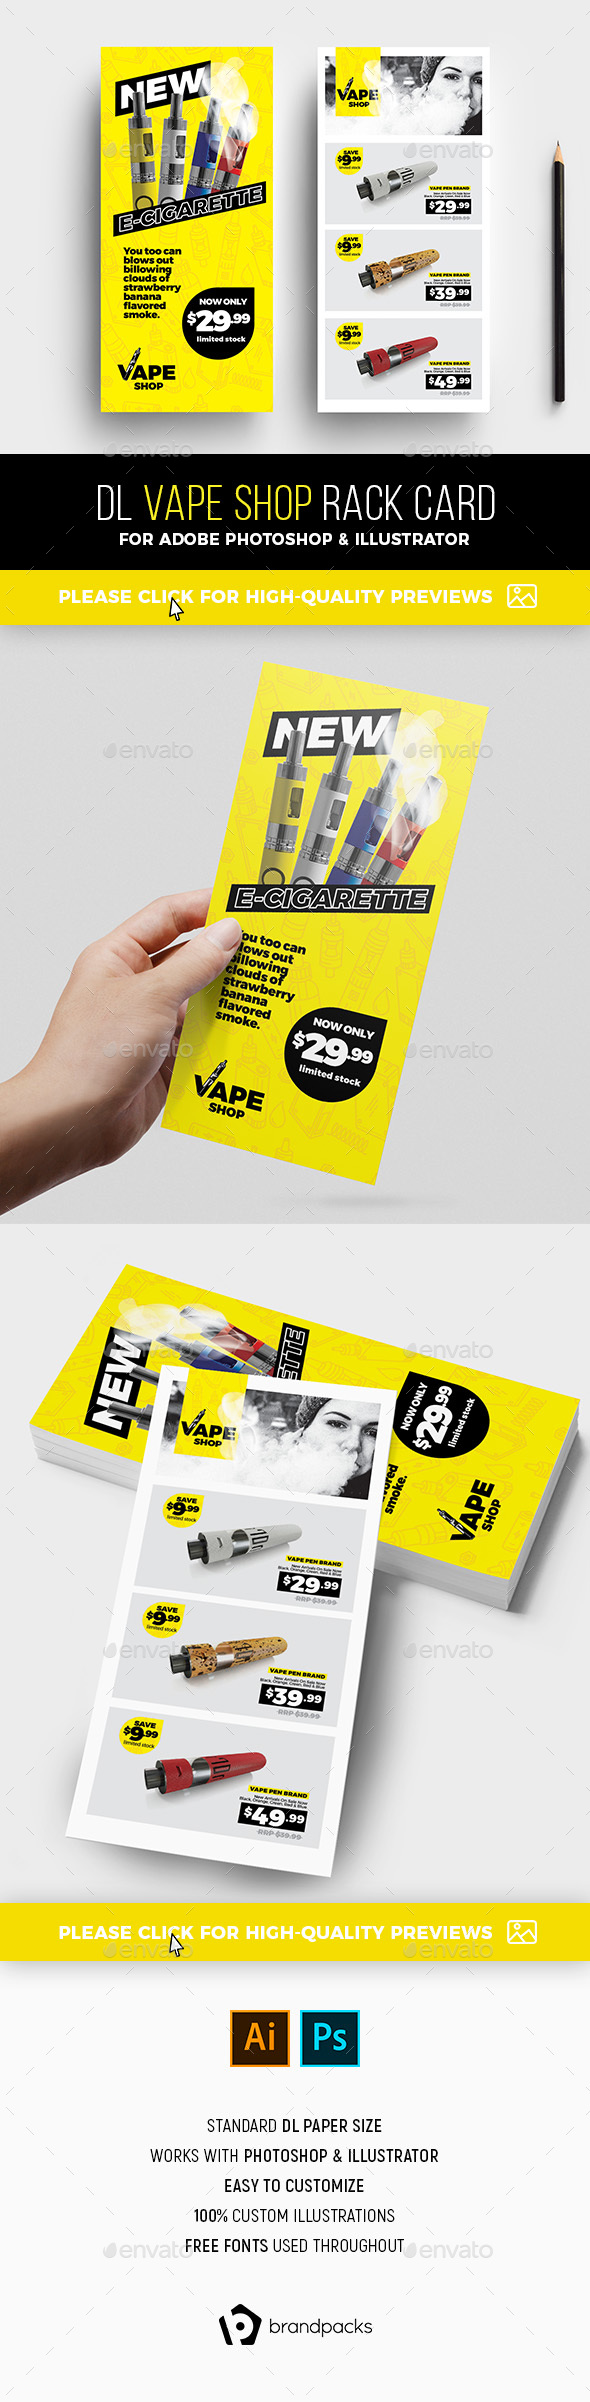 DL Vape Shop Rack Card Template - Commerce Flyers